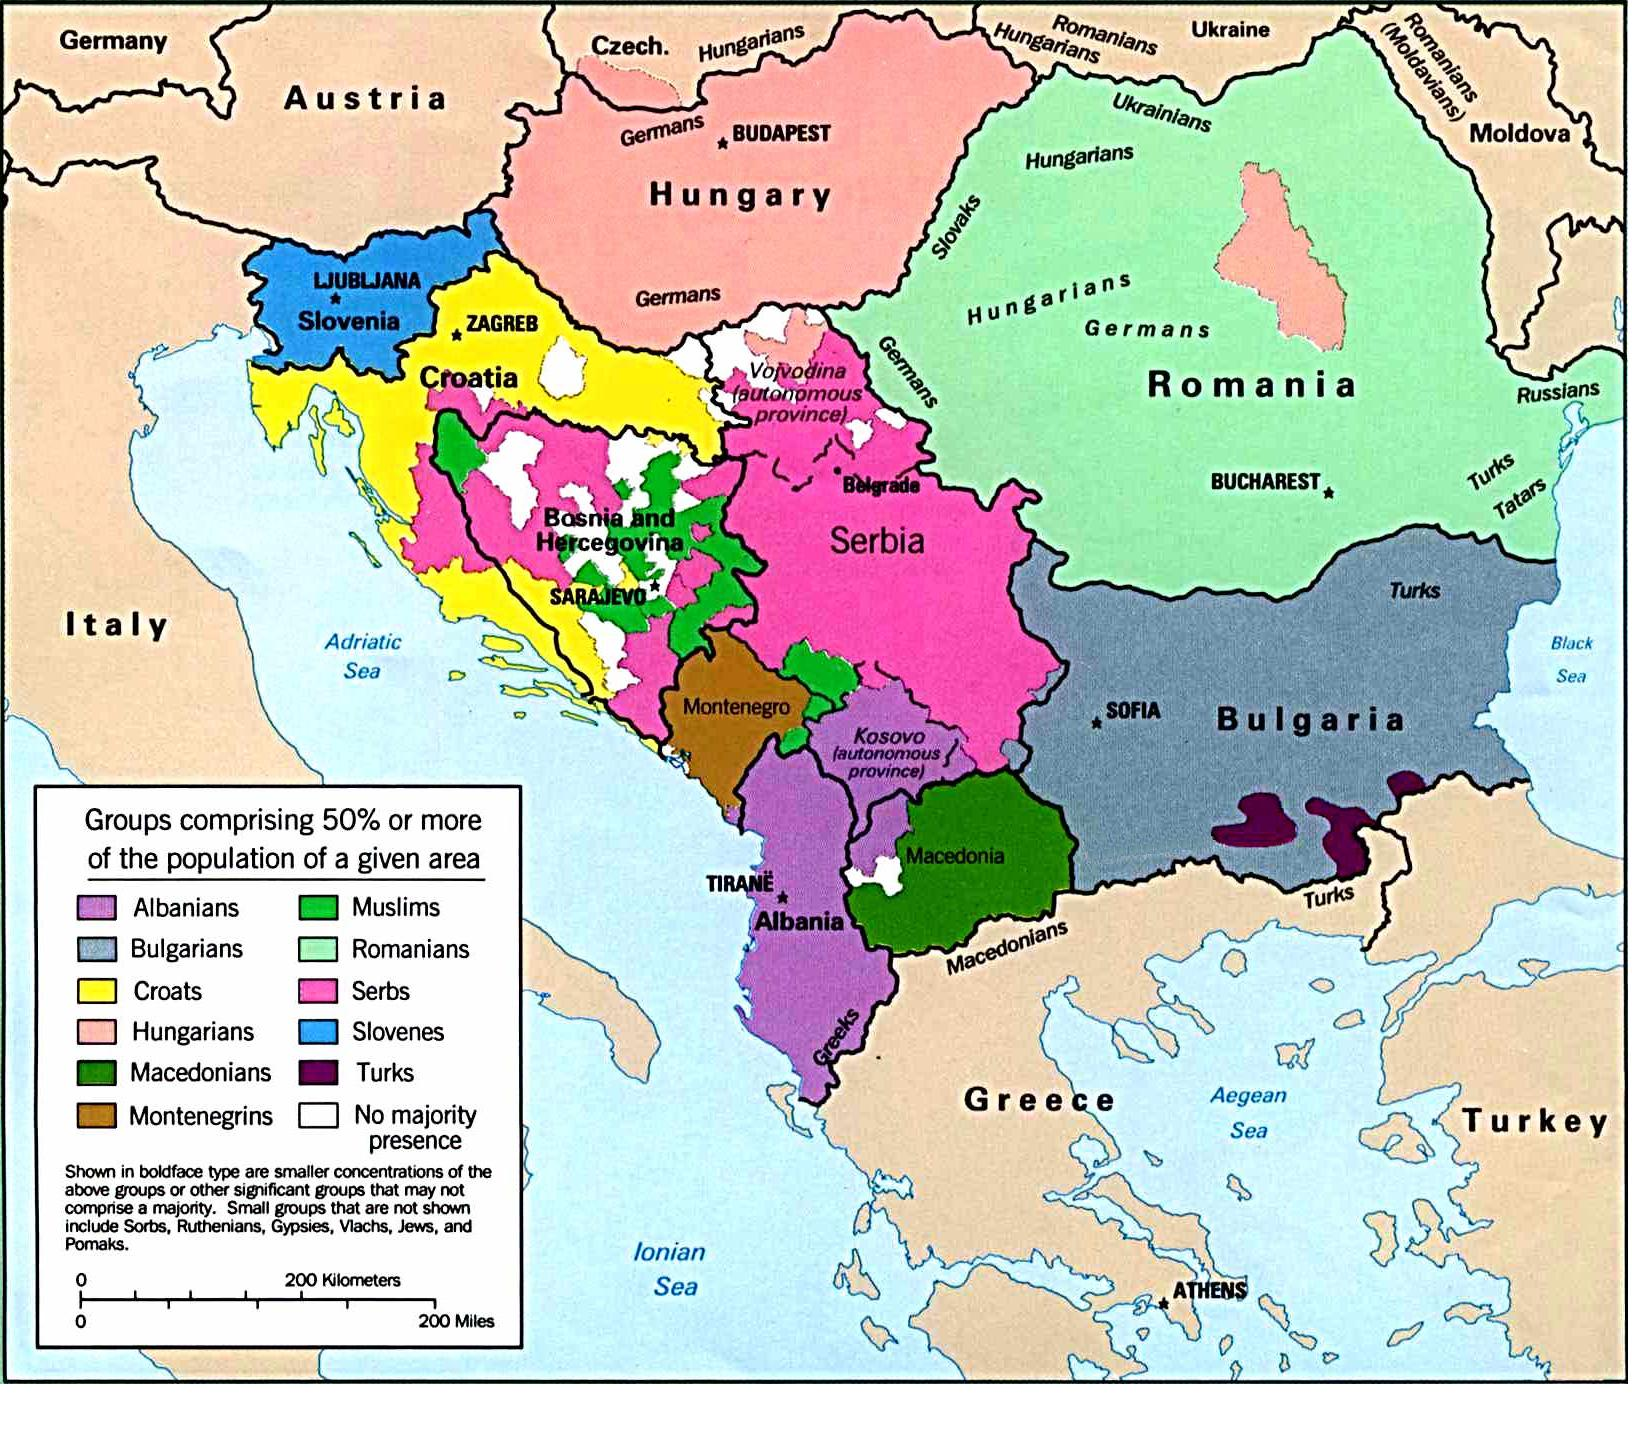 Kosovo: Legality Of Secession & Evolution Of International Law